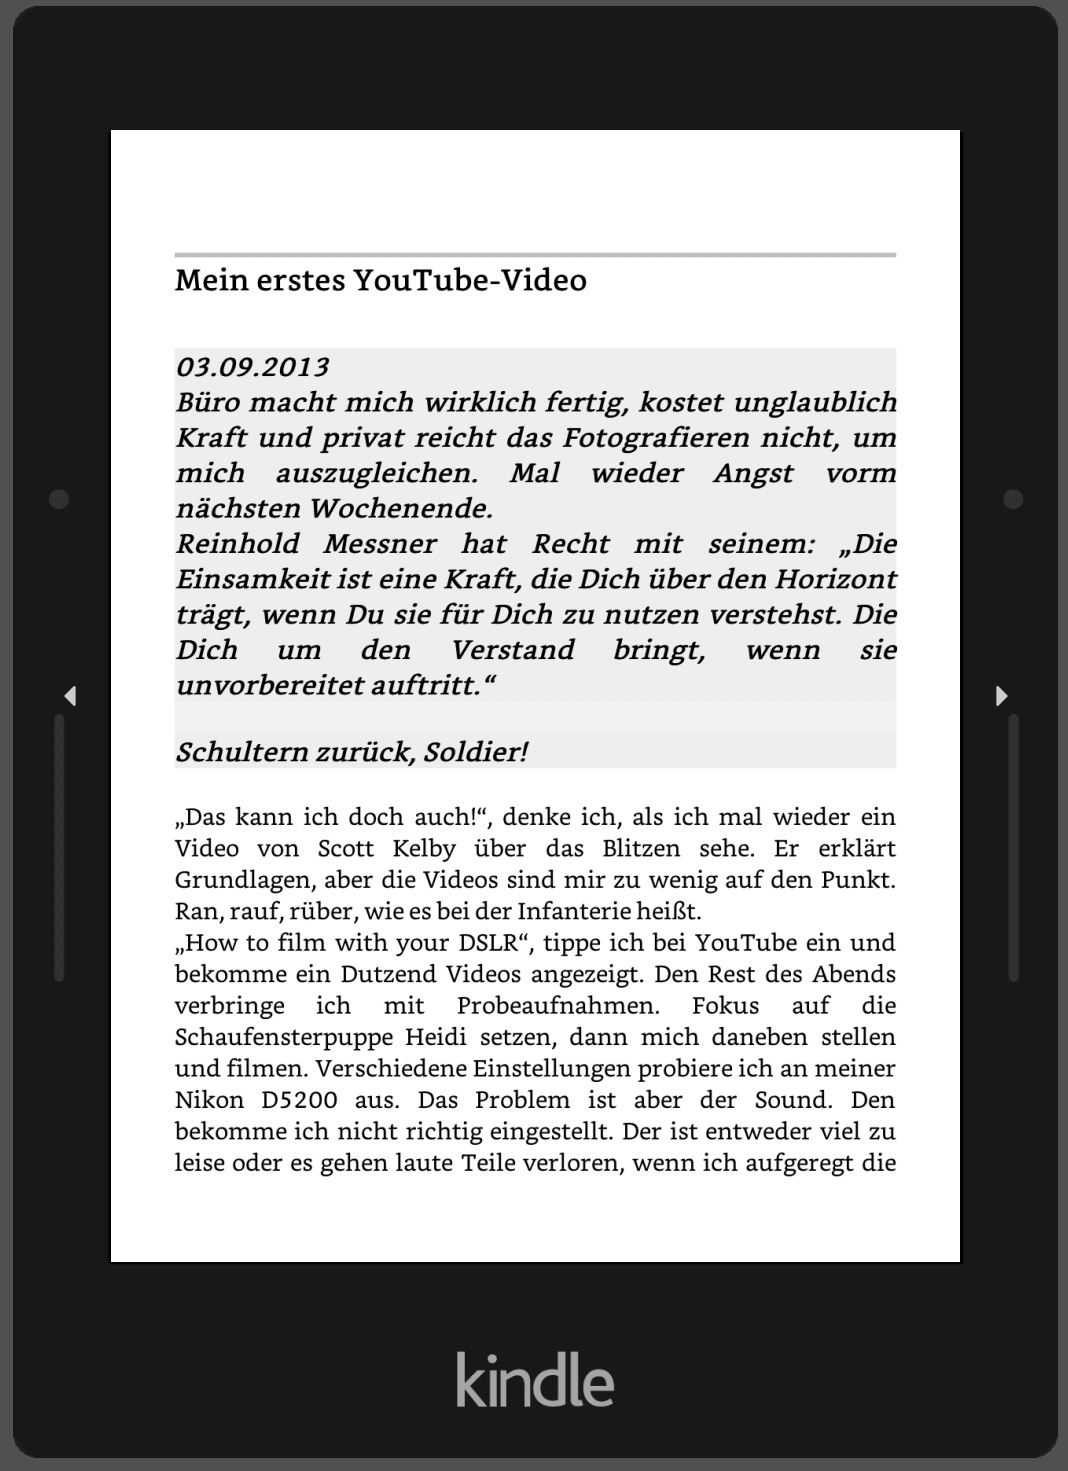 E-Book auf dem Kindle Reader